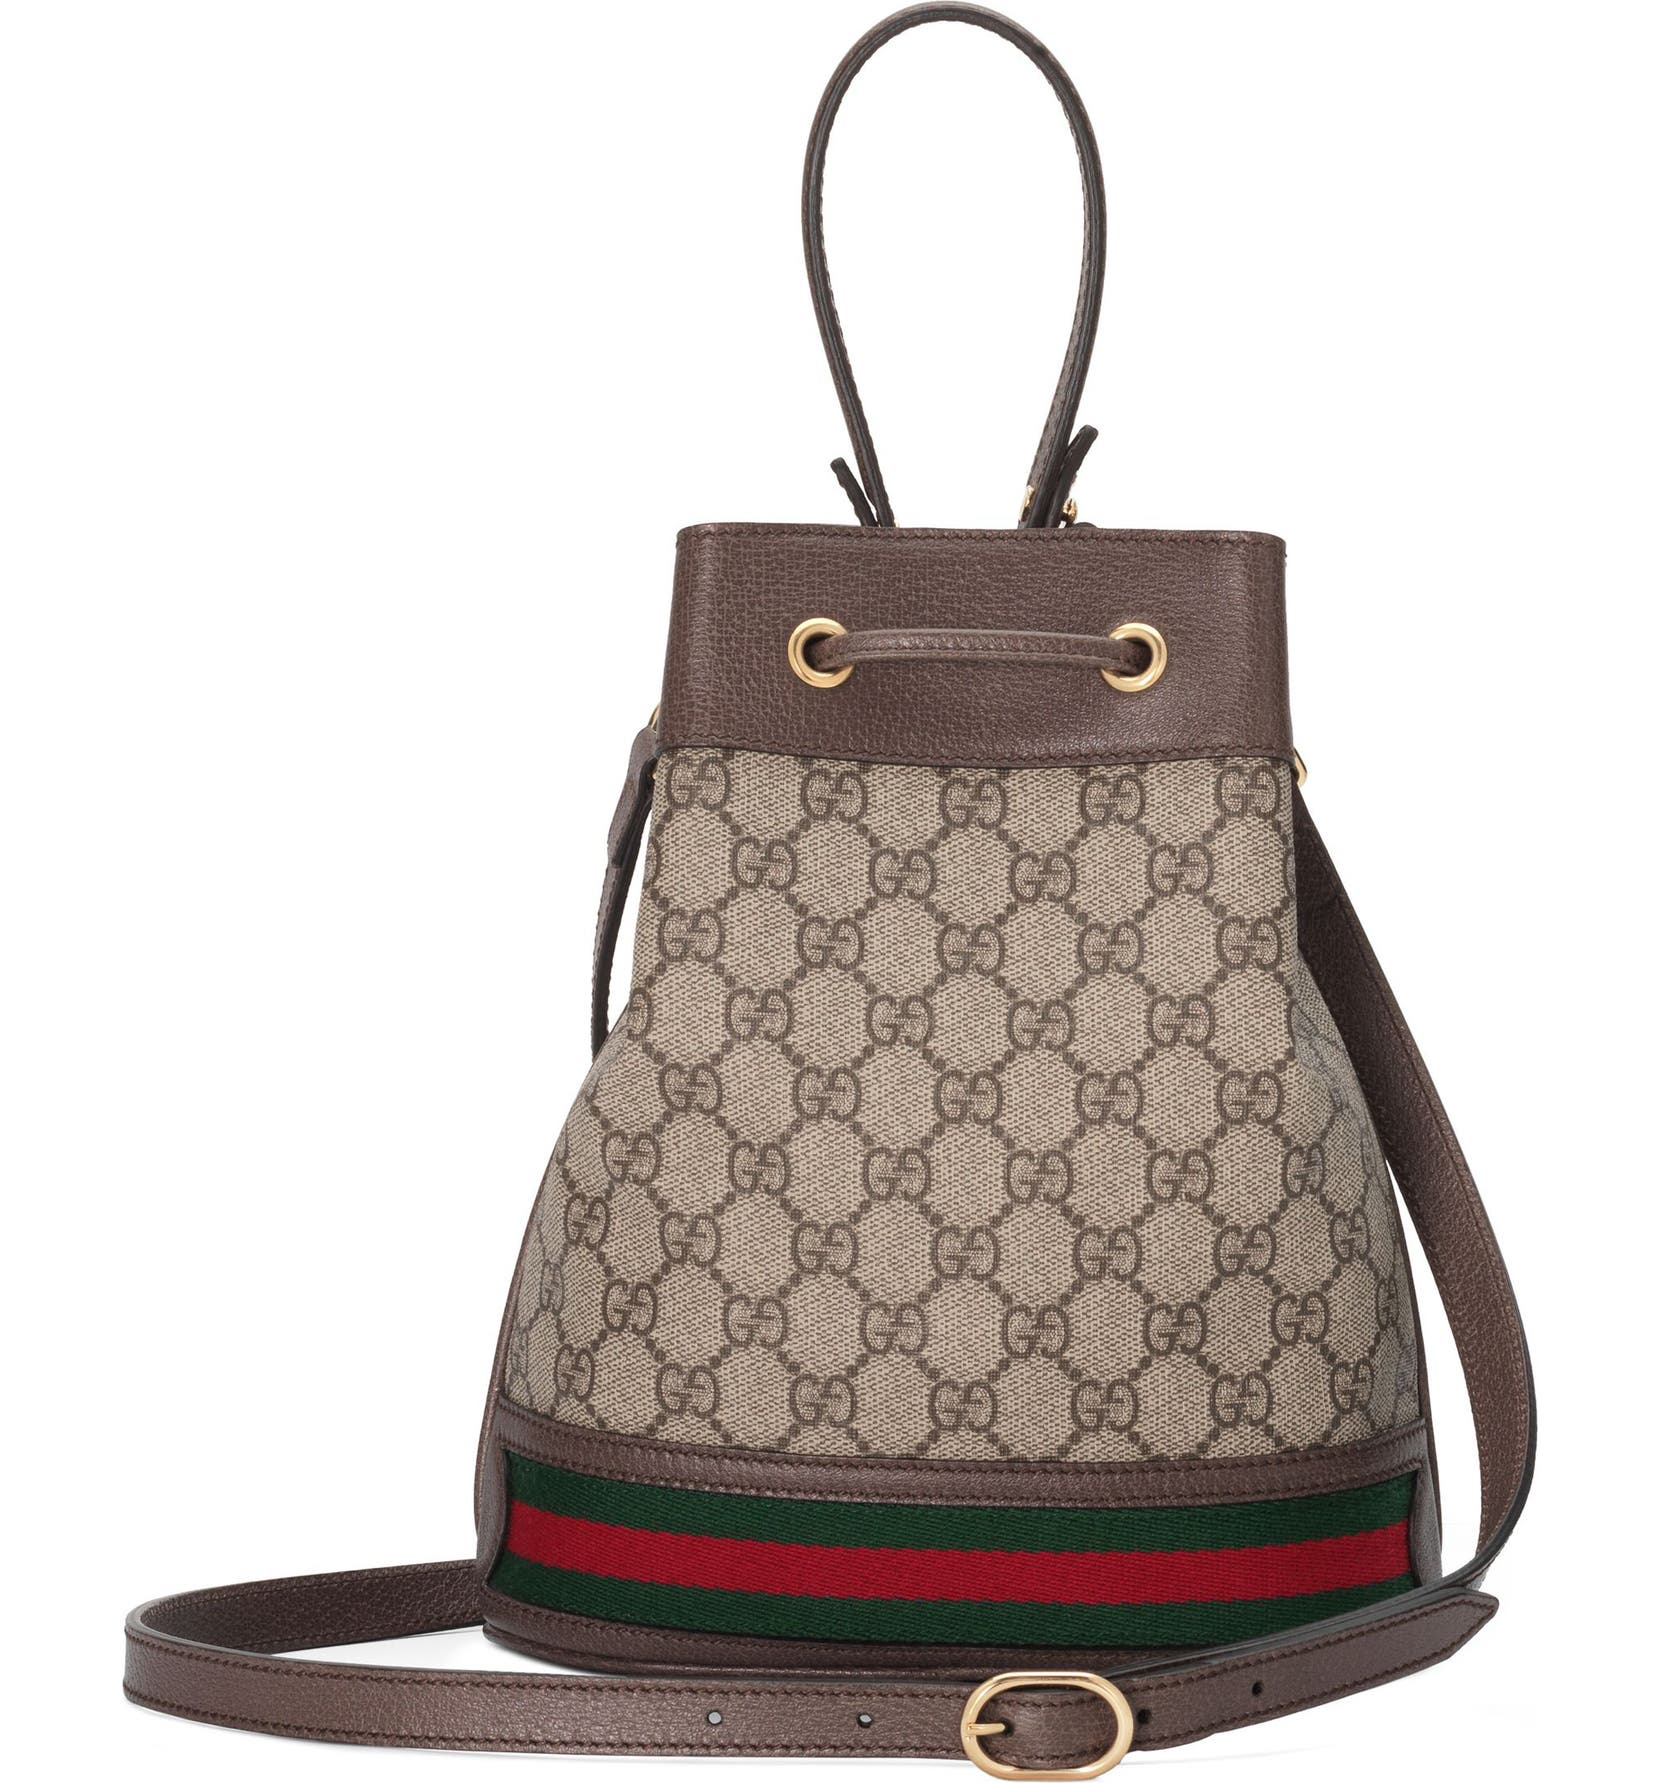 84b114cb36e4b0 Gucci Small Ophidia GG Supreme Canvas Bucket Bag | Nordstrom